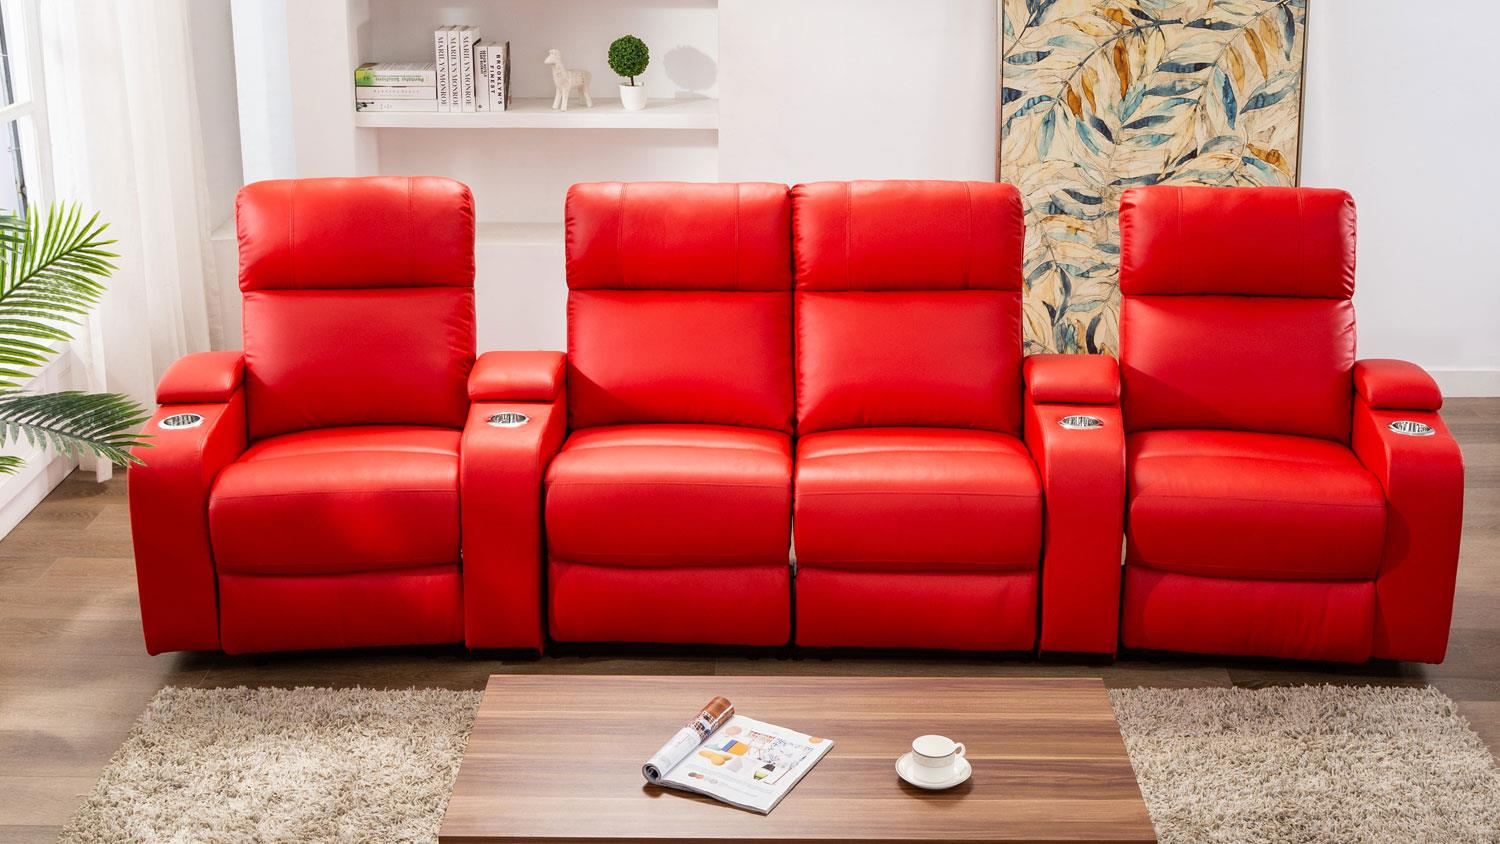 Cinema Sofa 4er Kinosessel In Rot Mit Relaxfunktion